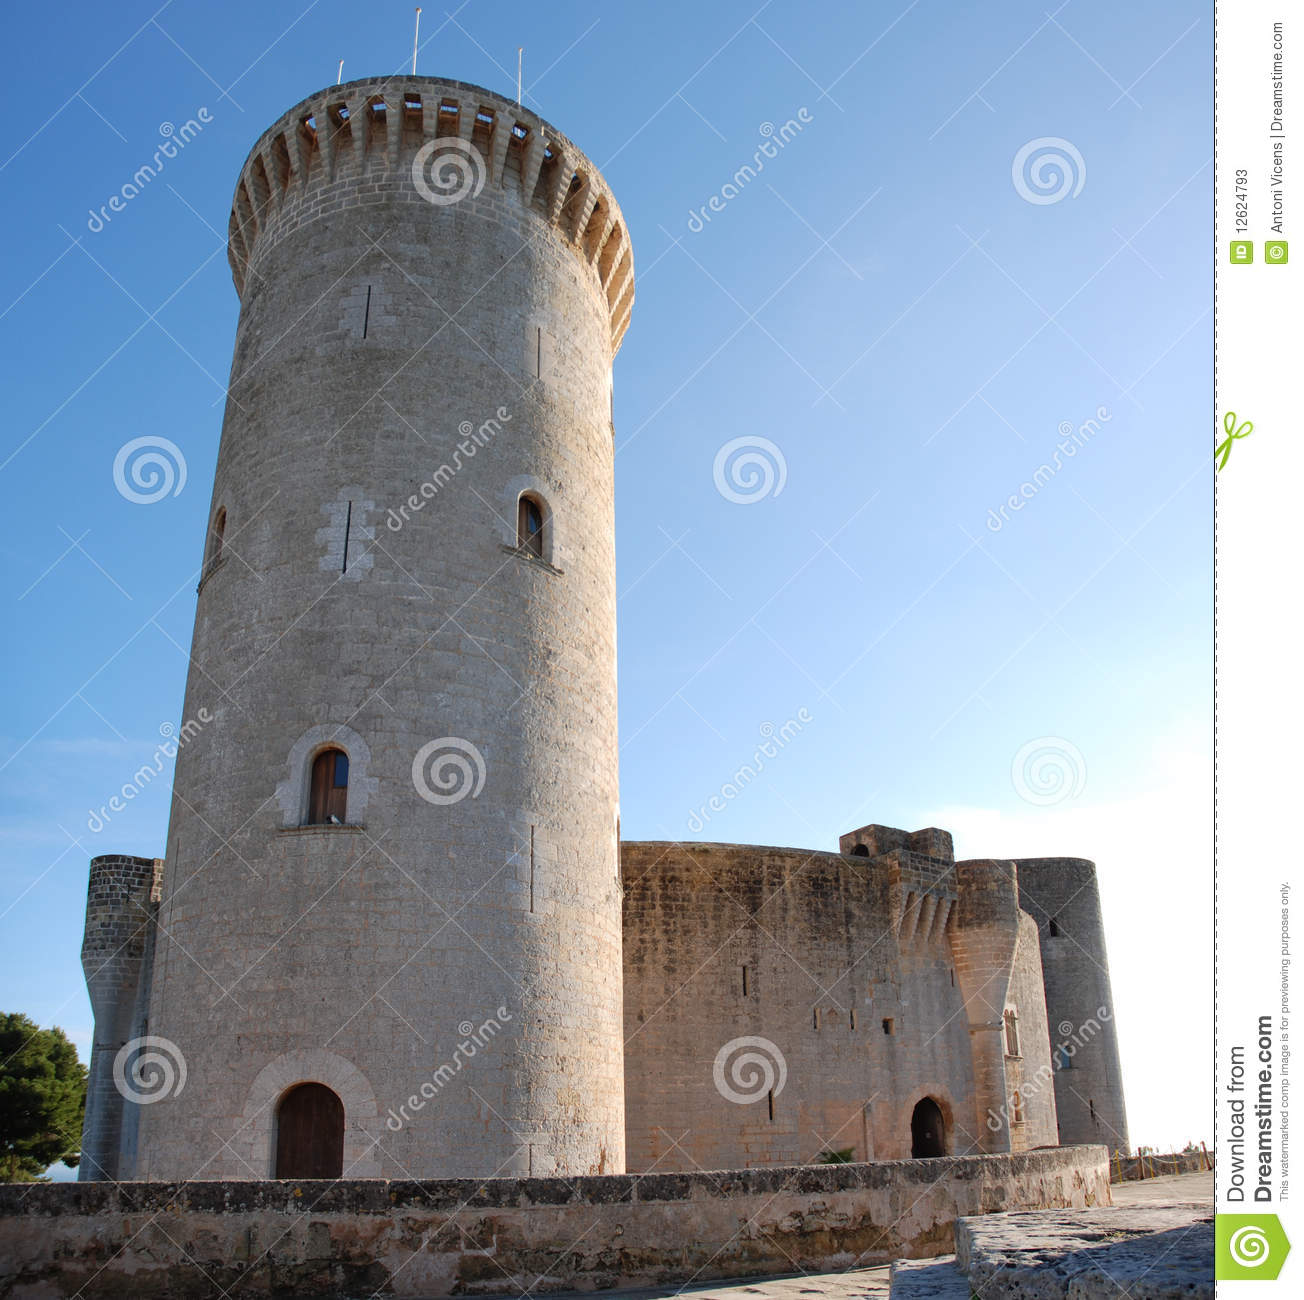 Download Bellver Castle Tower (Majorca) Stock Image - Image of arch, historical: 12624793